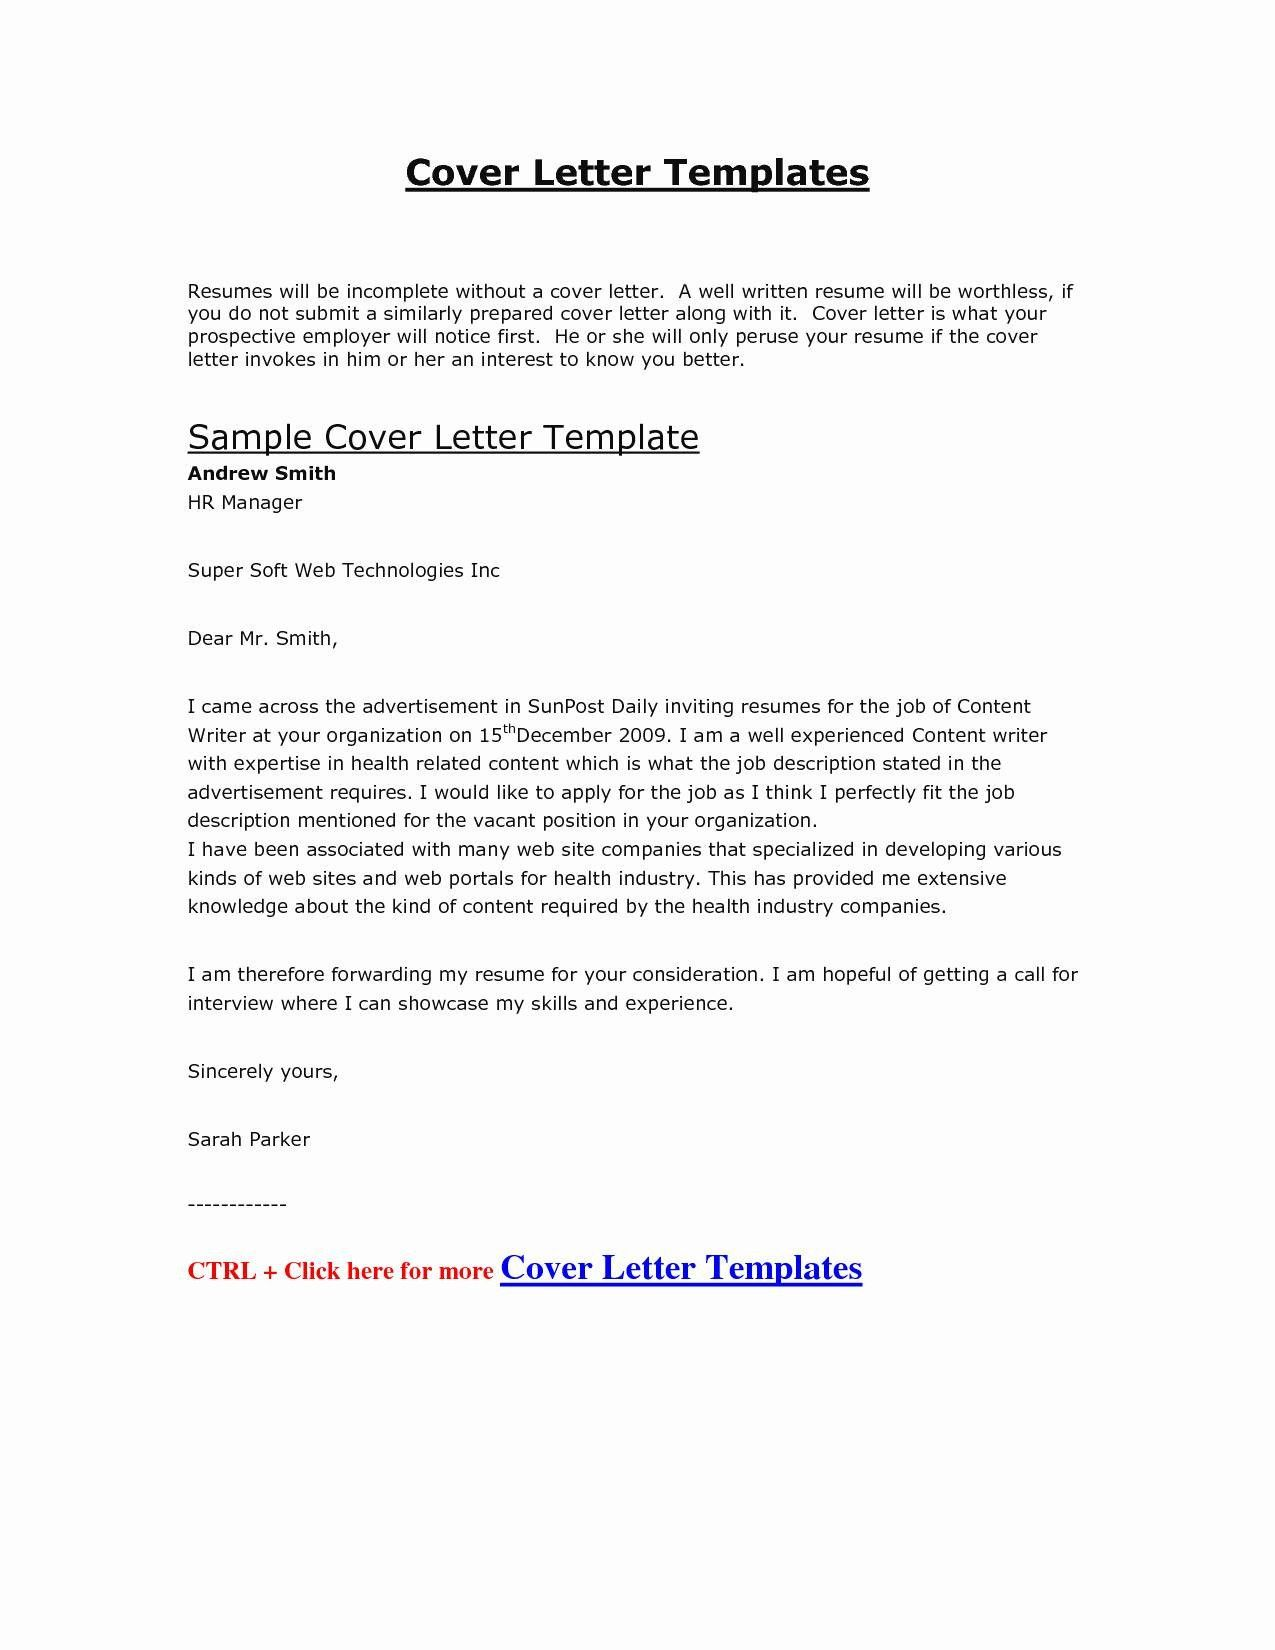 Google Doc Cover Letter Templates